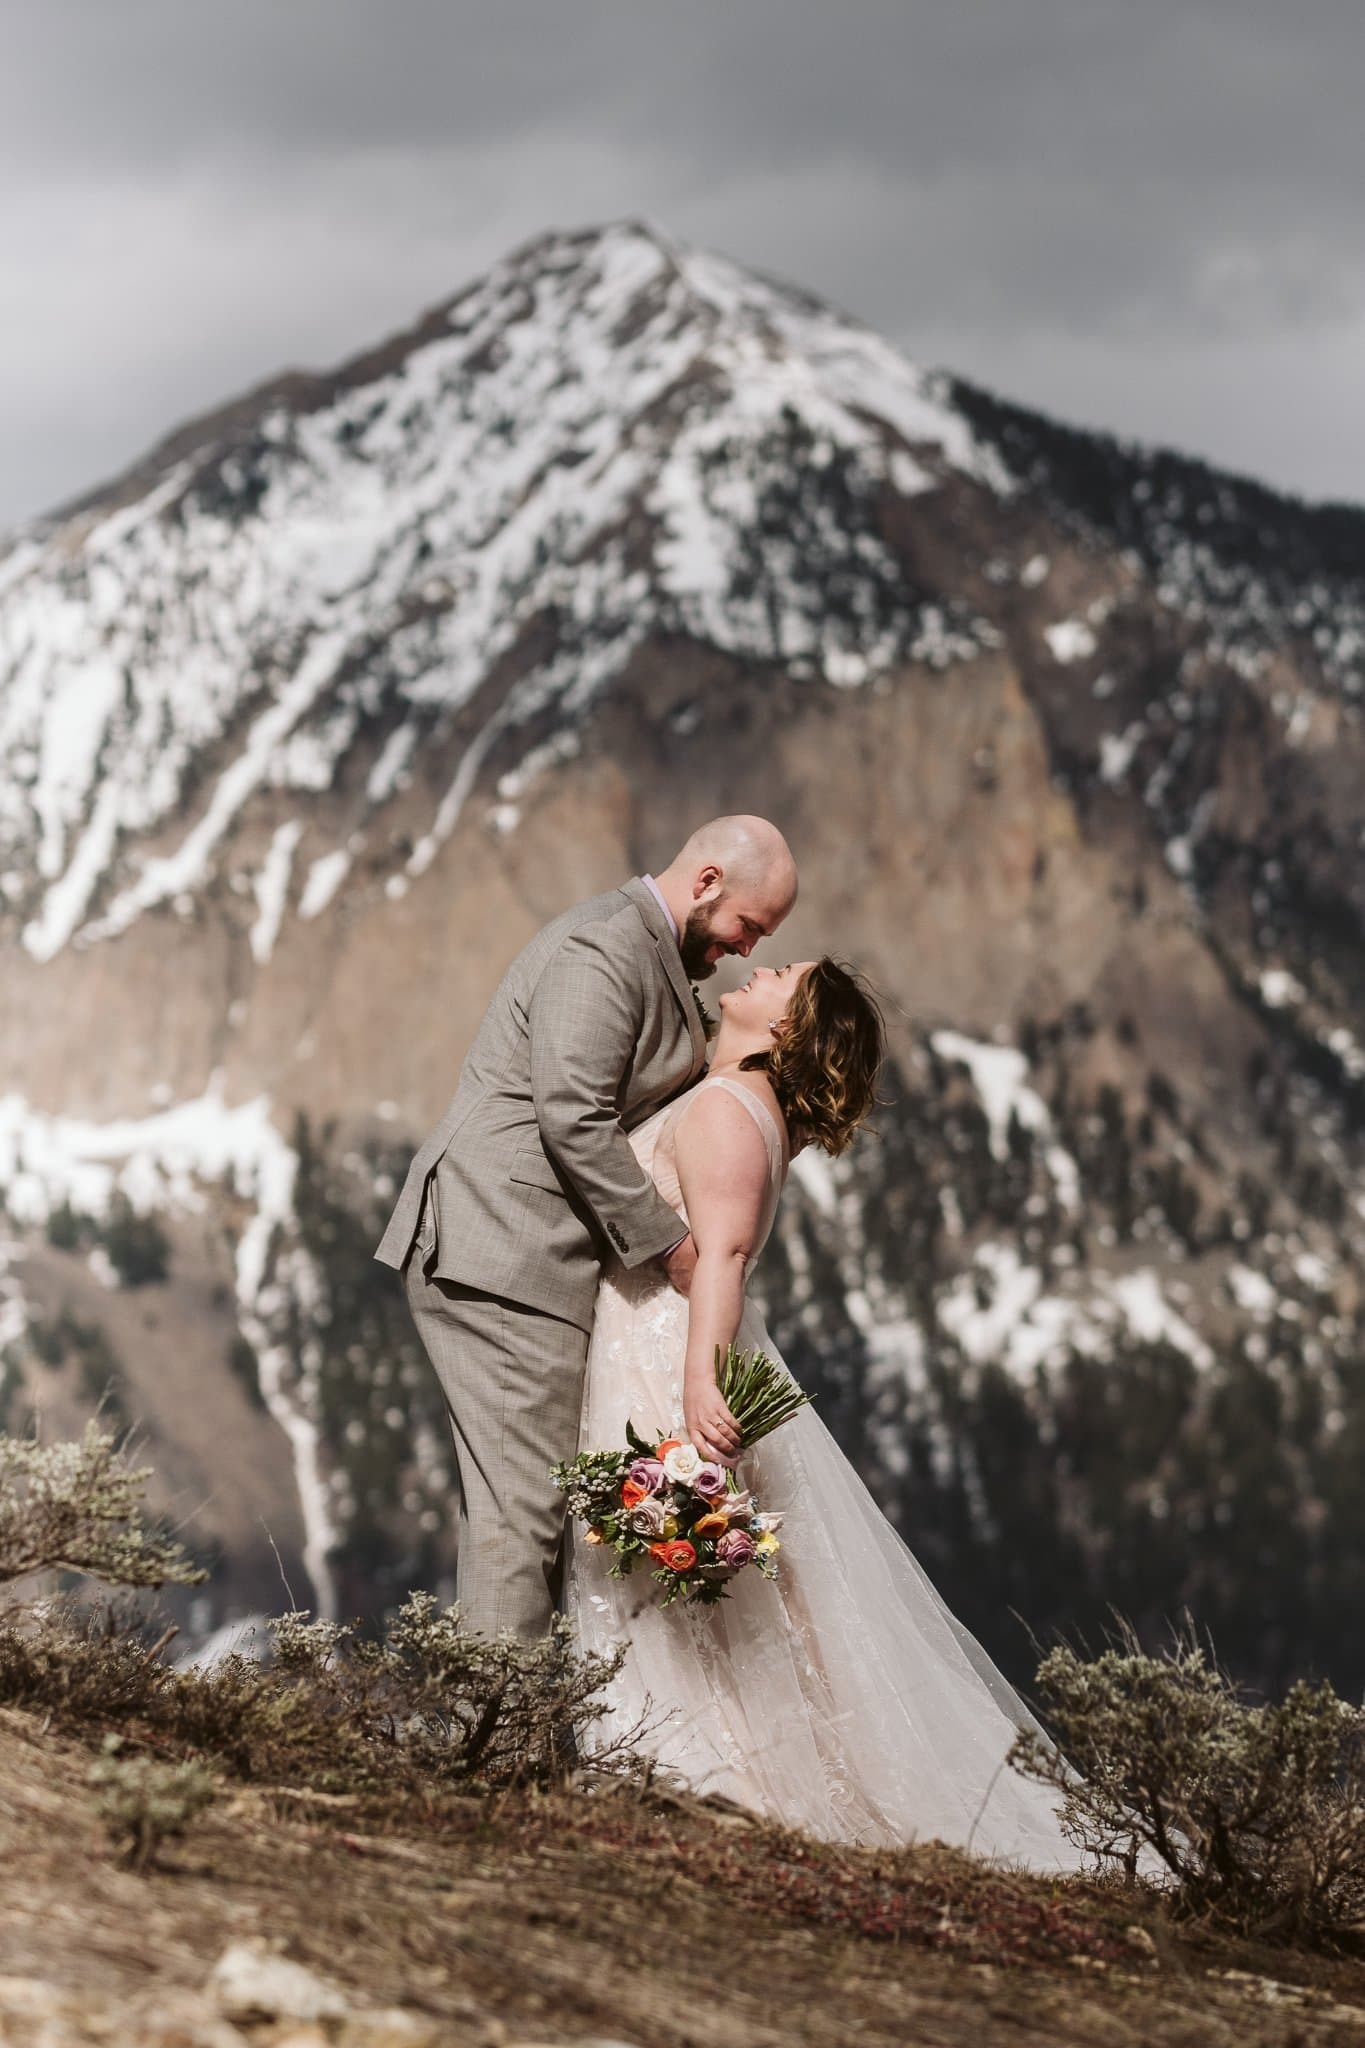 Bride and groom portrait in front of Mount Crested Butte, winter elopement photography, Colorado mountain wedding